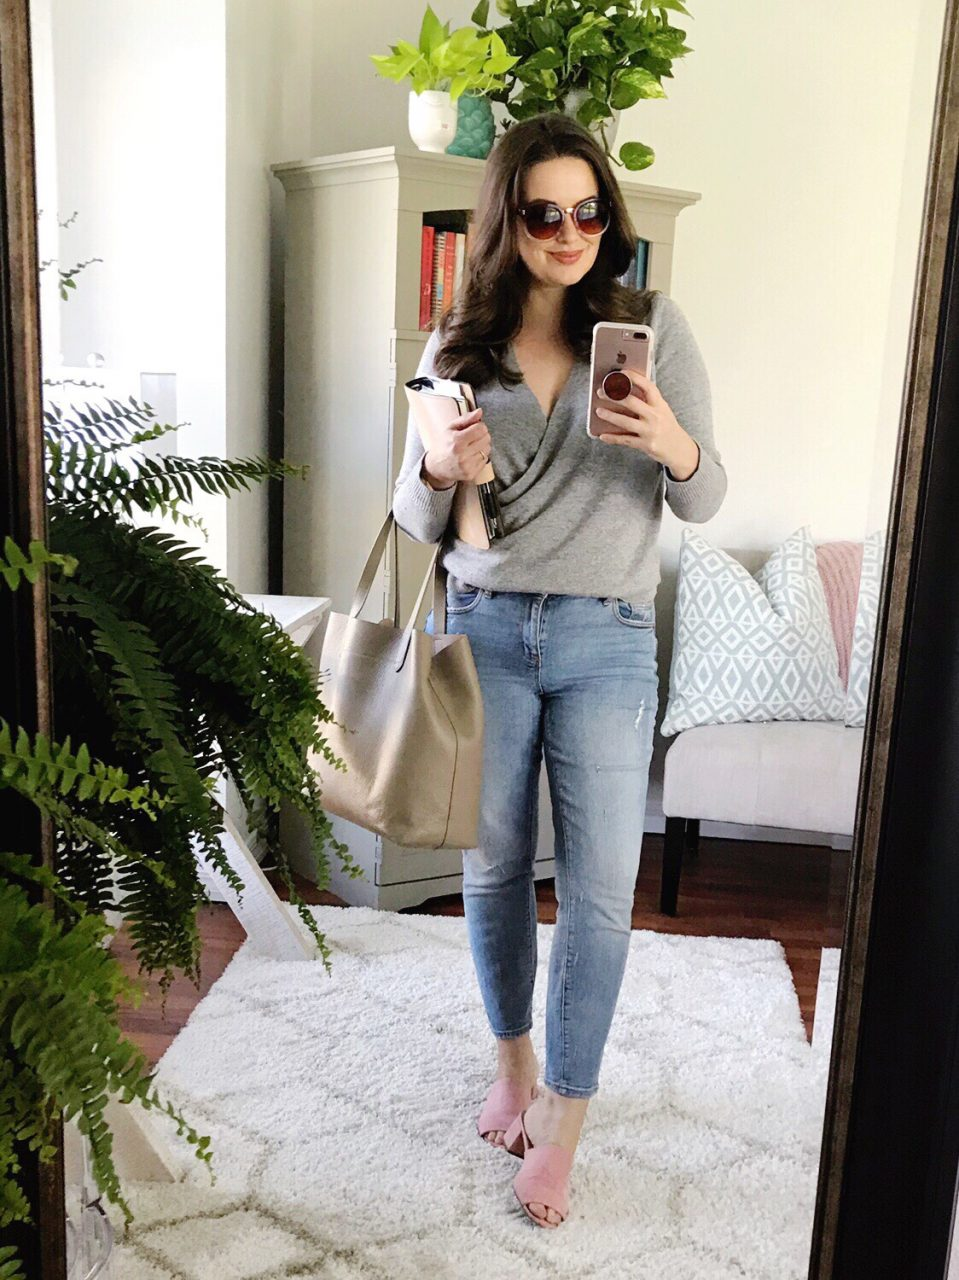 Style blogger wearing gray LOFT wrap sweater with LOFT boyfriend jeans and pink suede mules, carrying Cuyana structured leather tote bag.